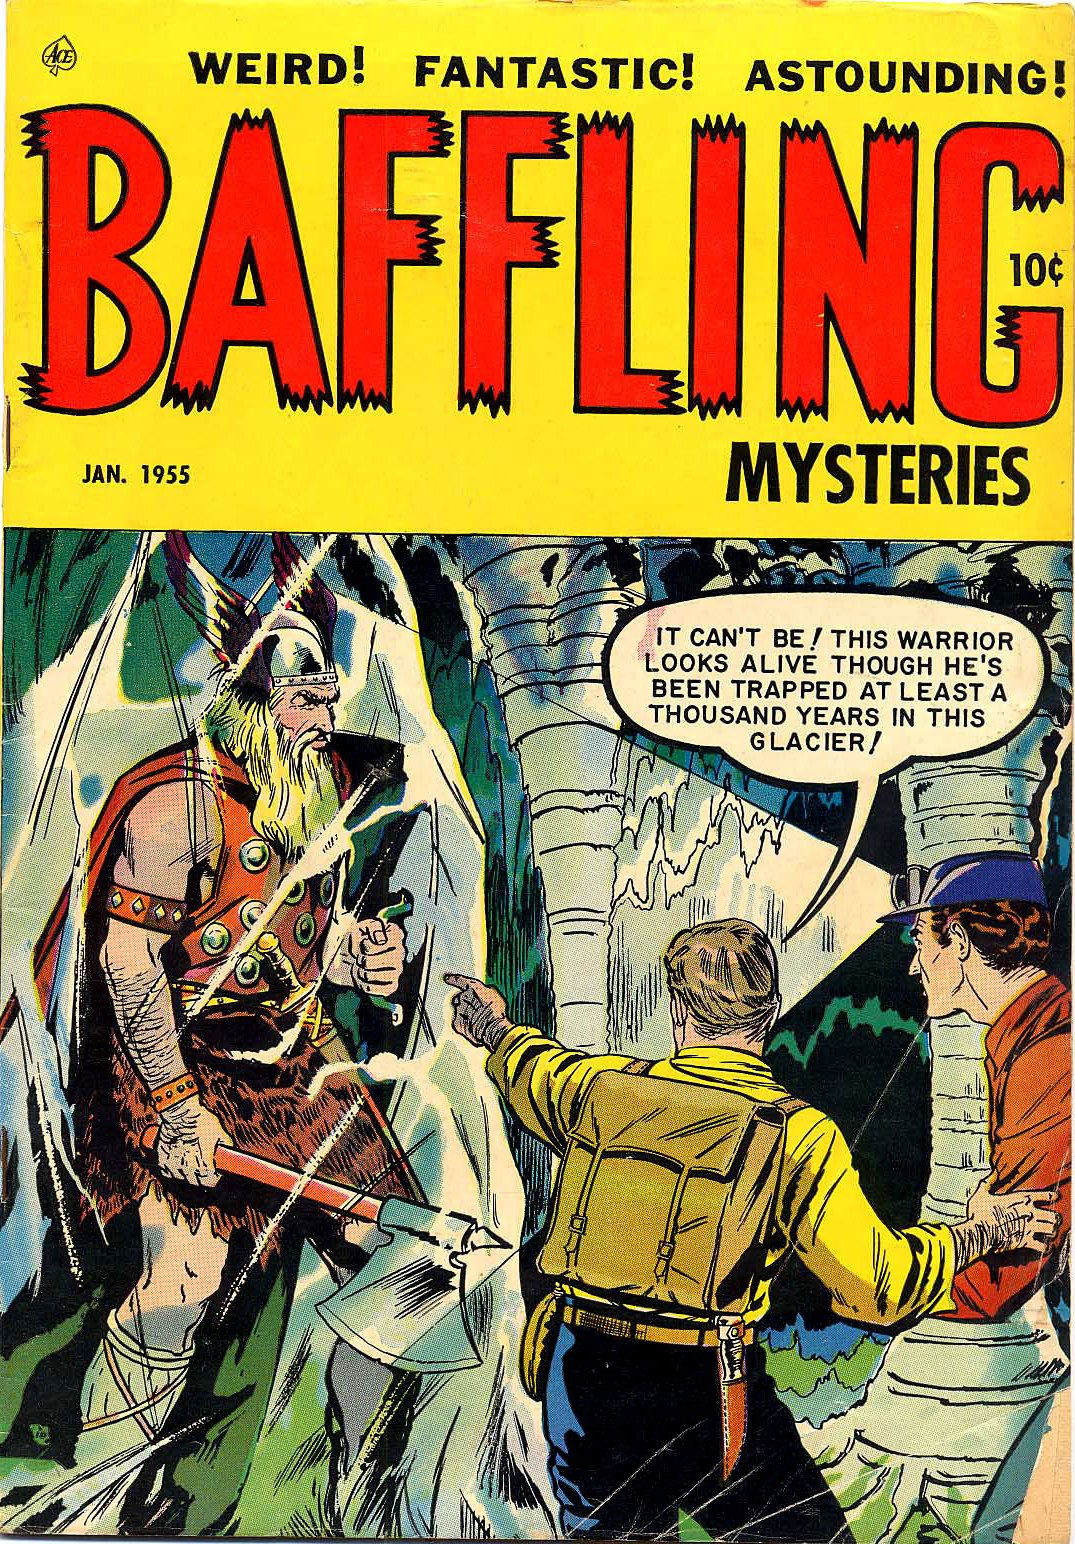 Baffling Mysteries Vol 1 24